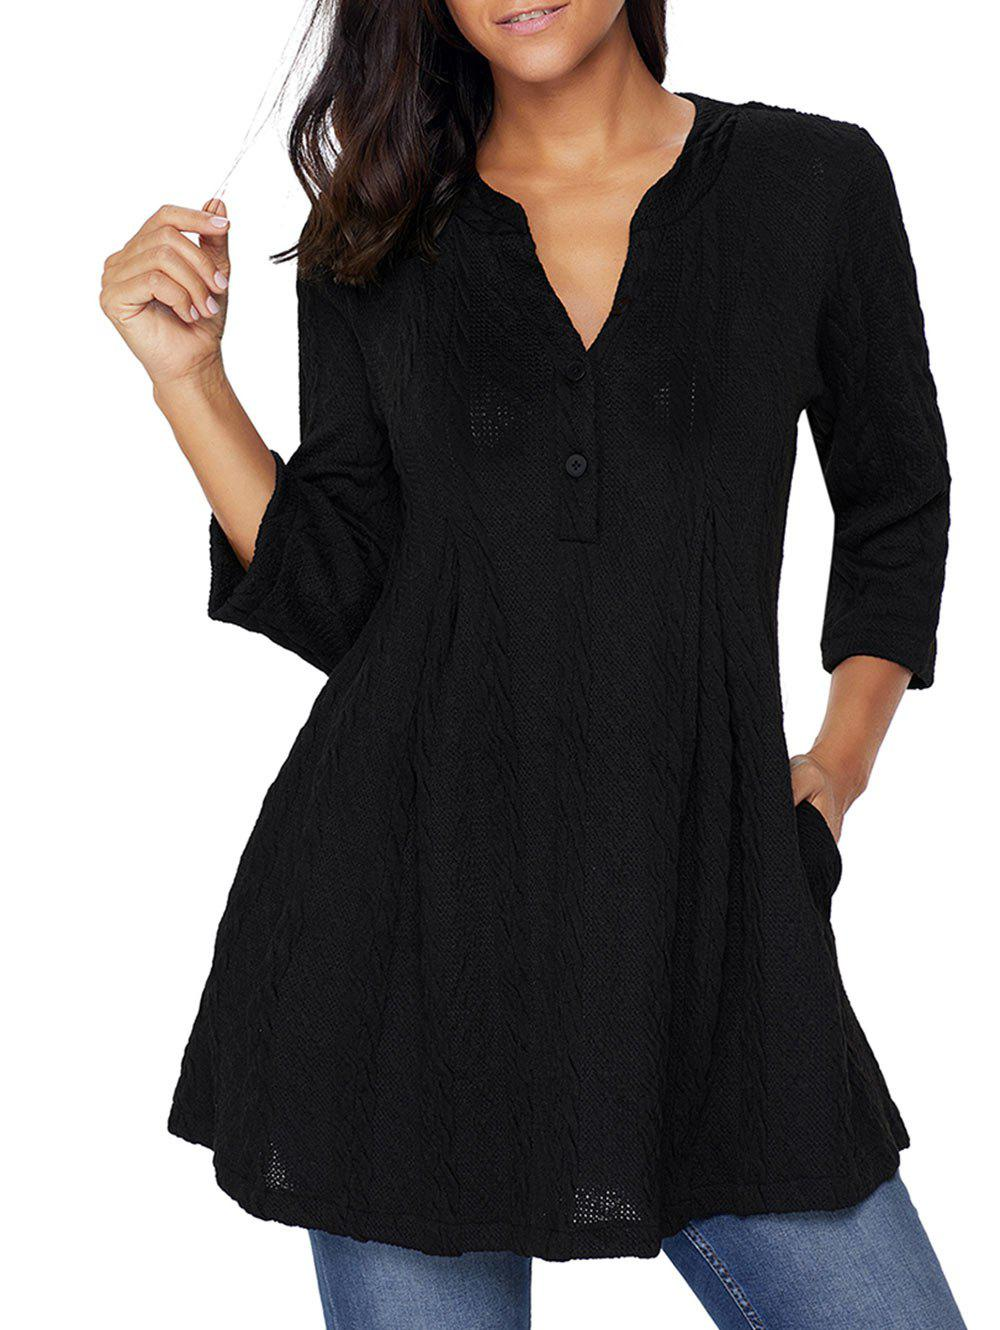 Cable Knitted V Neck Tunic SweaterWOMEN<br><br>Size: 2XL; Color: BLACK; Type: Pullovers; Material: Polyester,Spandex; Sleeve Length: Three Quarter; Collar: V-Neck; Style: Fashion; Pattern Type: Solid; Season: Fall,Spring; Weight: 0.6300kg; Package Contents: 1 x Sweater;